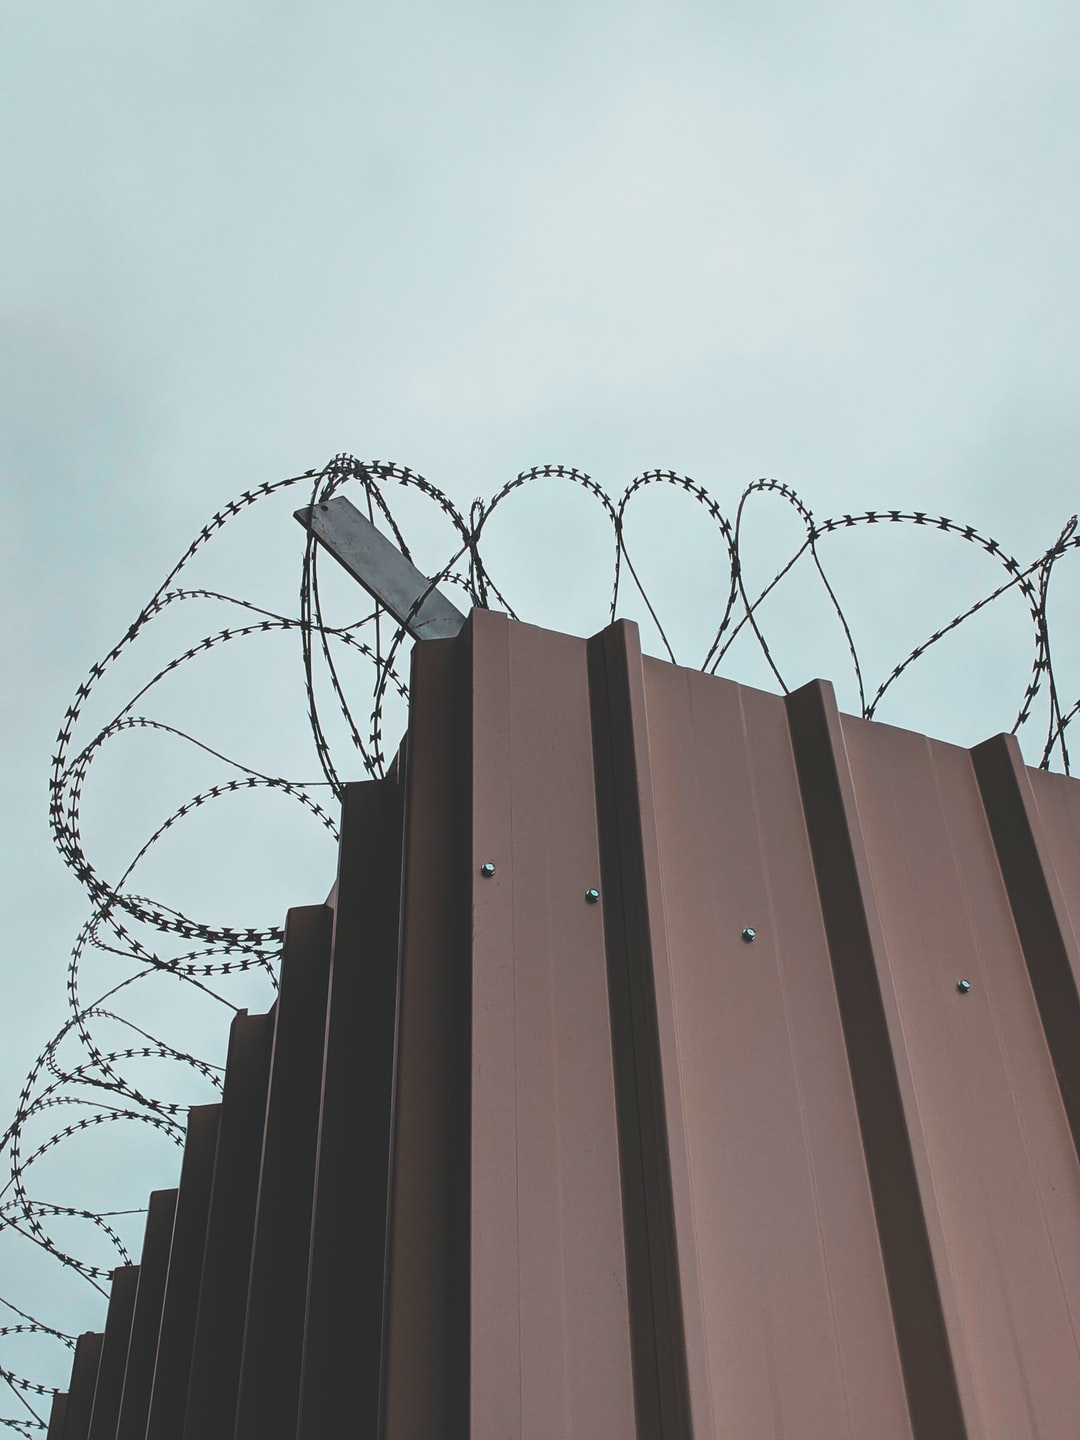 Barbed Wire and metal sheet wall to protect a dangerous construction site.